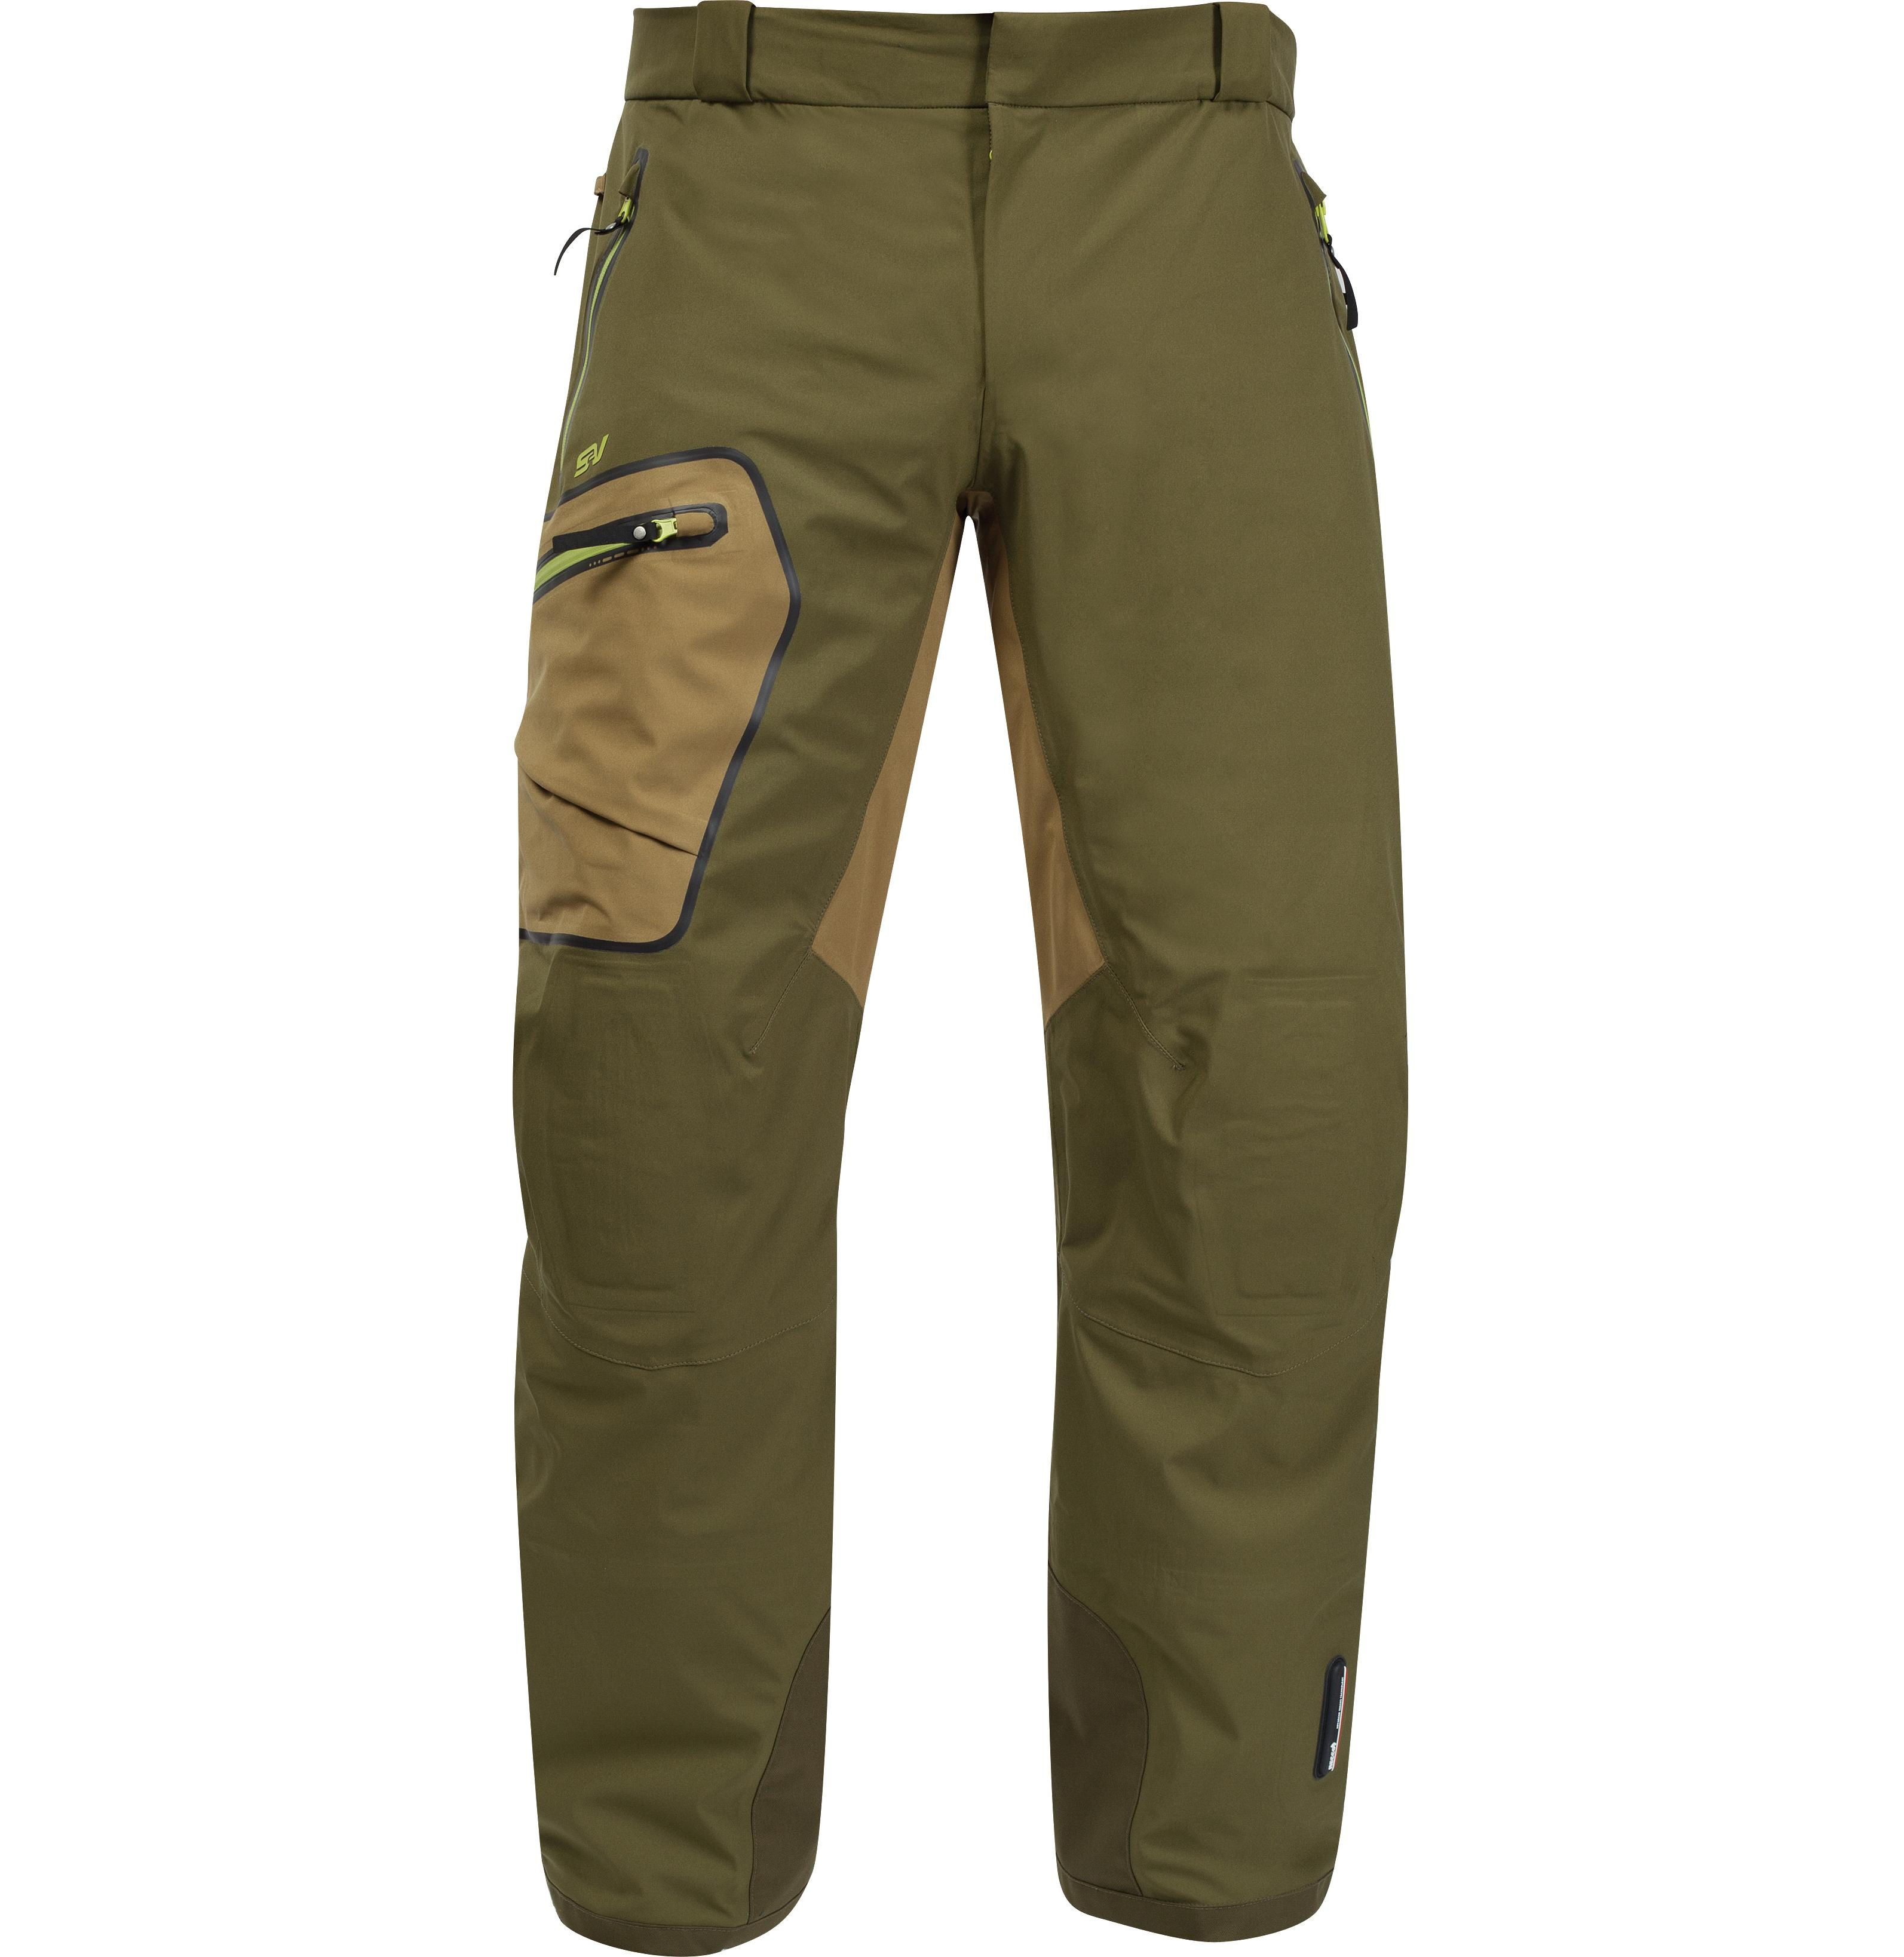 Rocky S2v Get Men S Waterproof Insulated Provision Pants